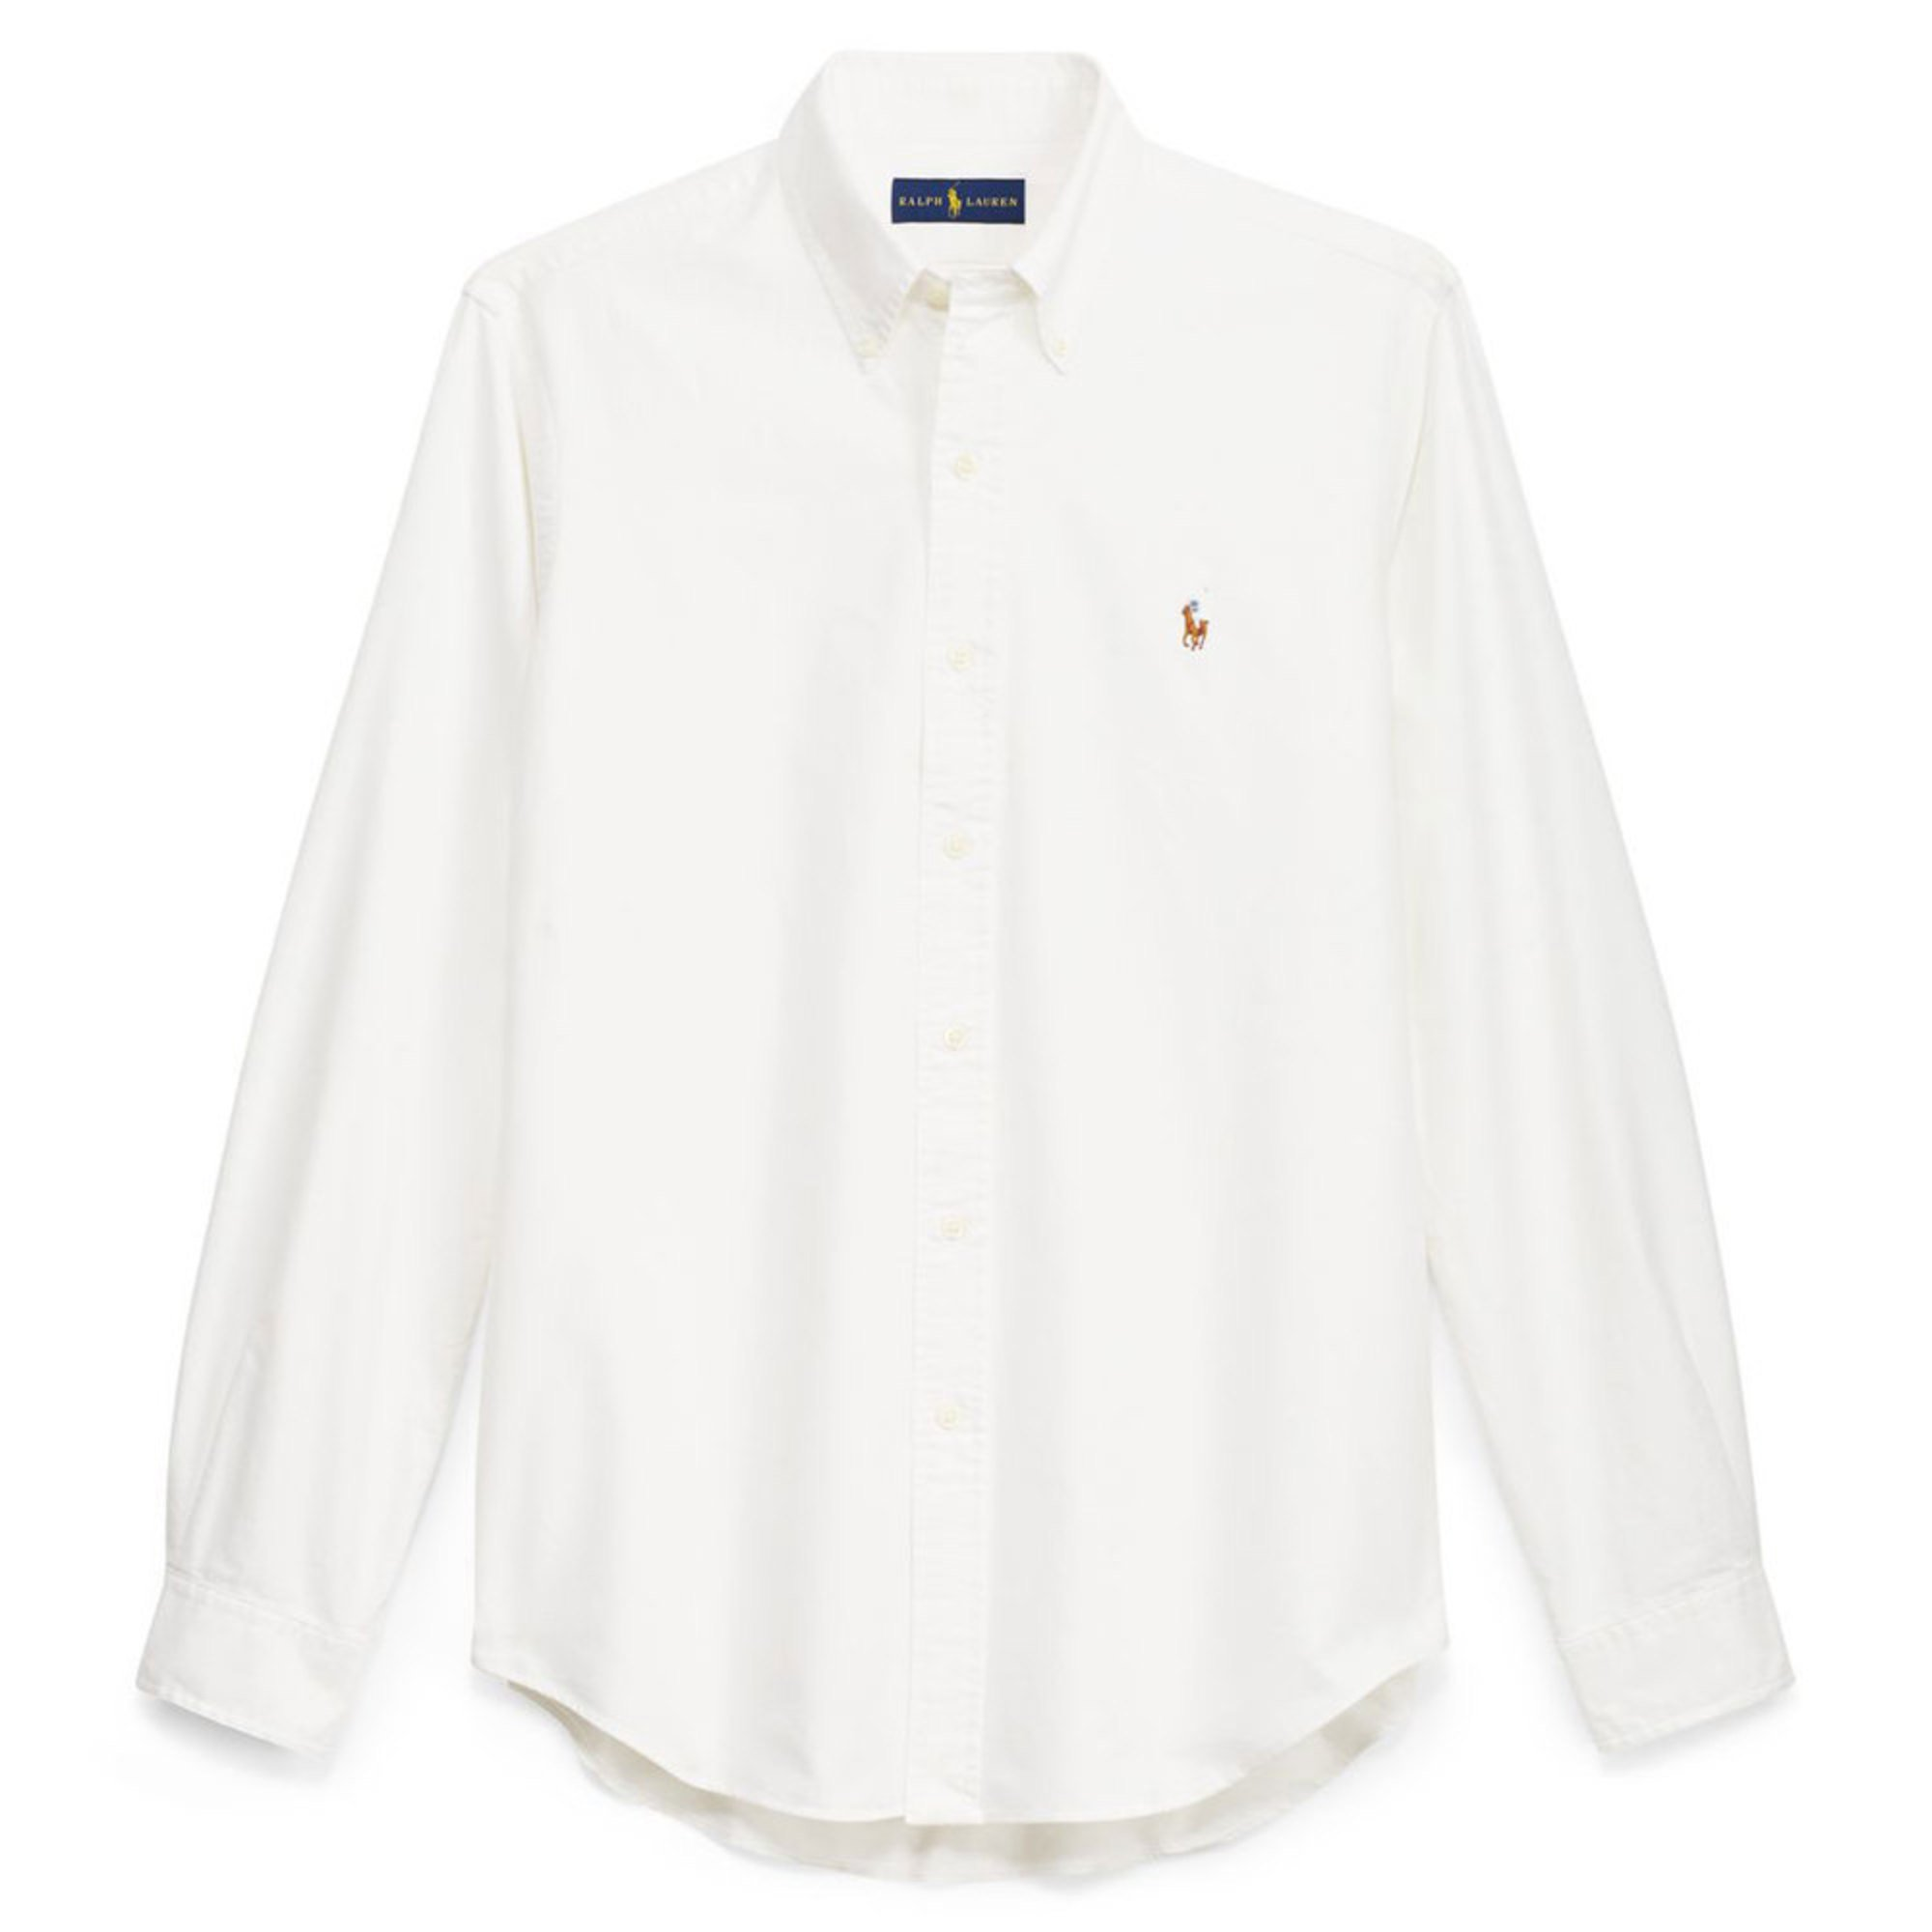 00351dbce3f5c Polo Ralph Lauren. Polo Ralph Lauren Men s Long Sleeve ...